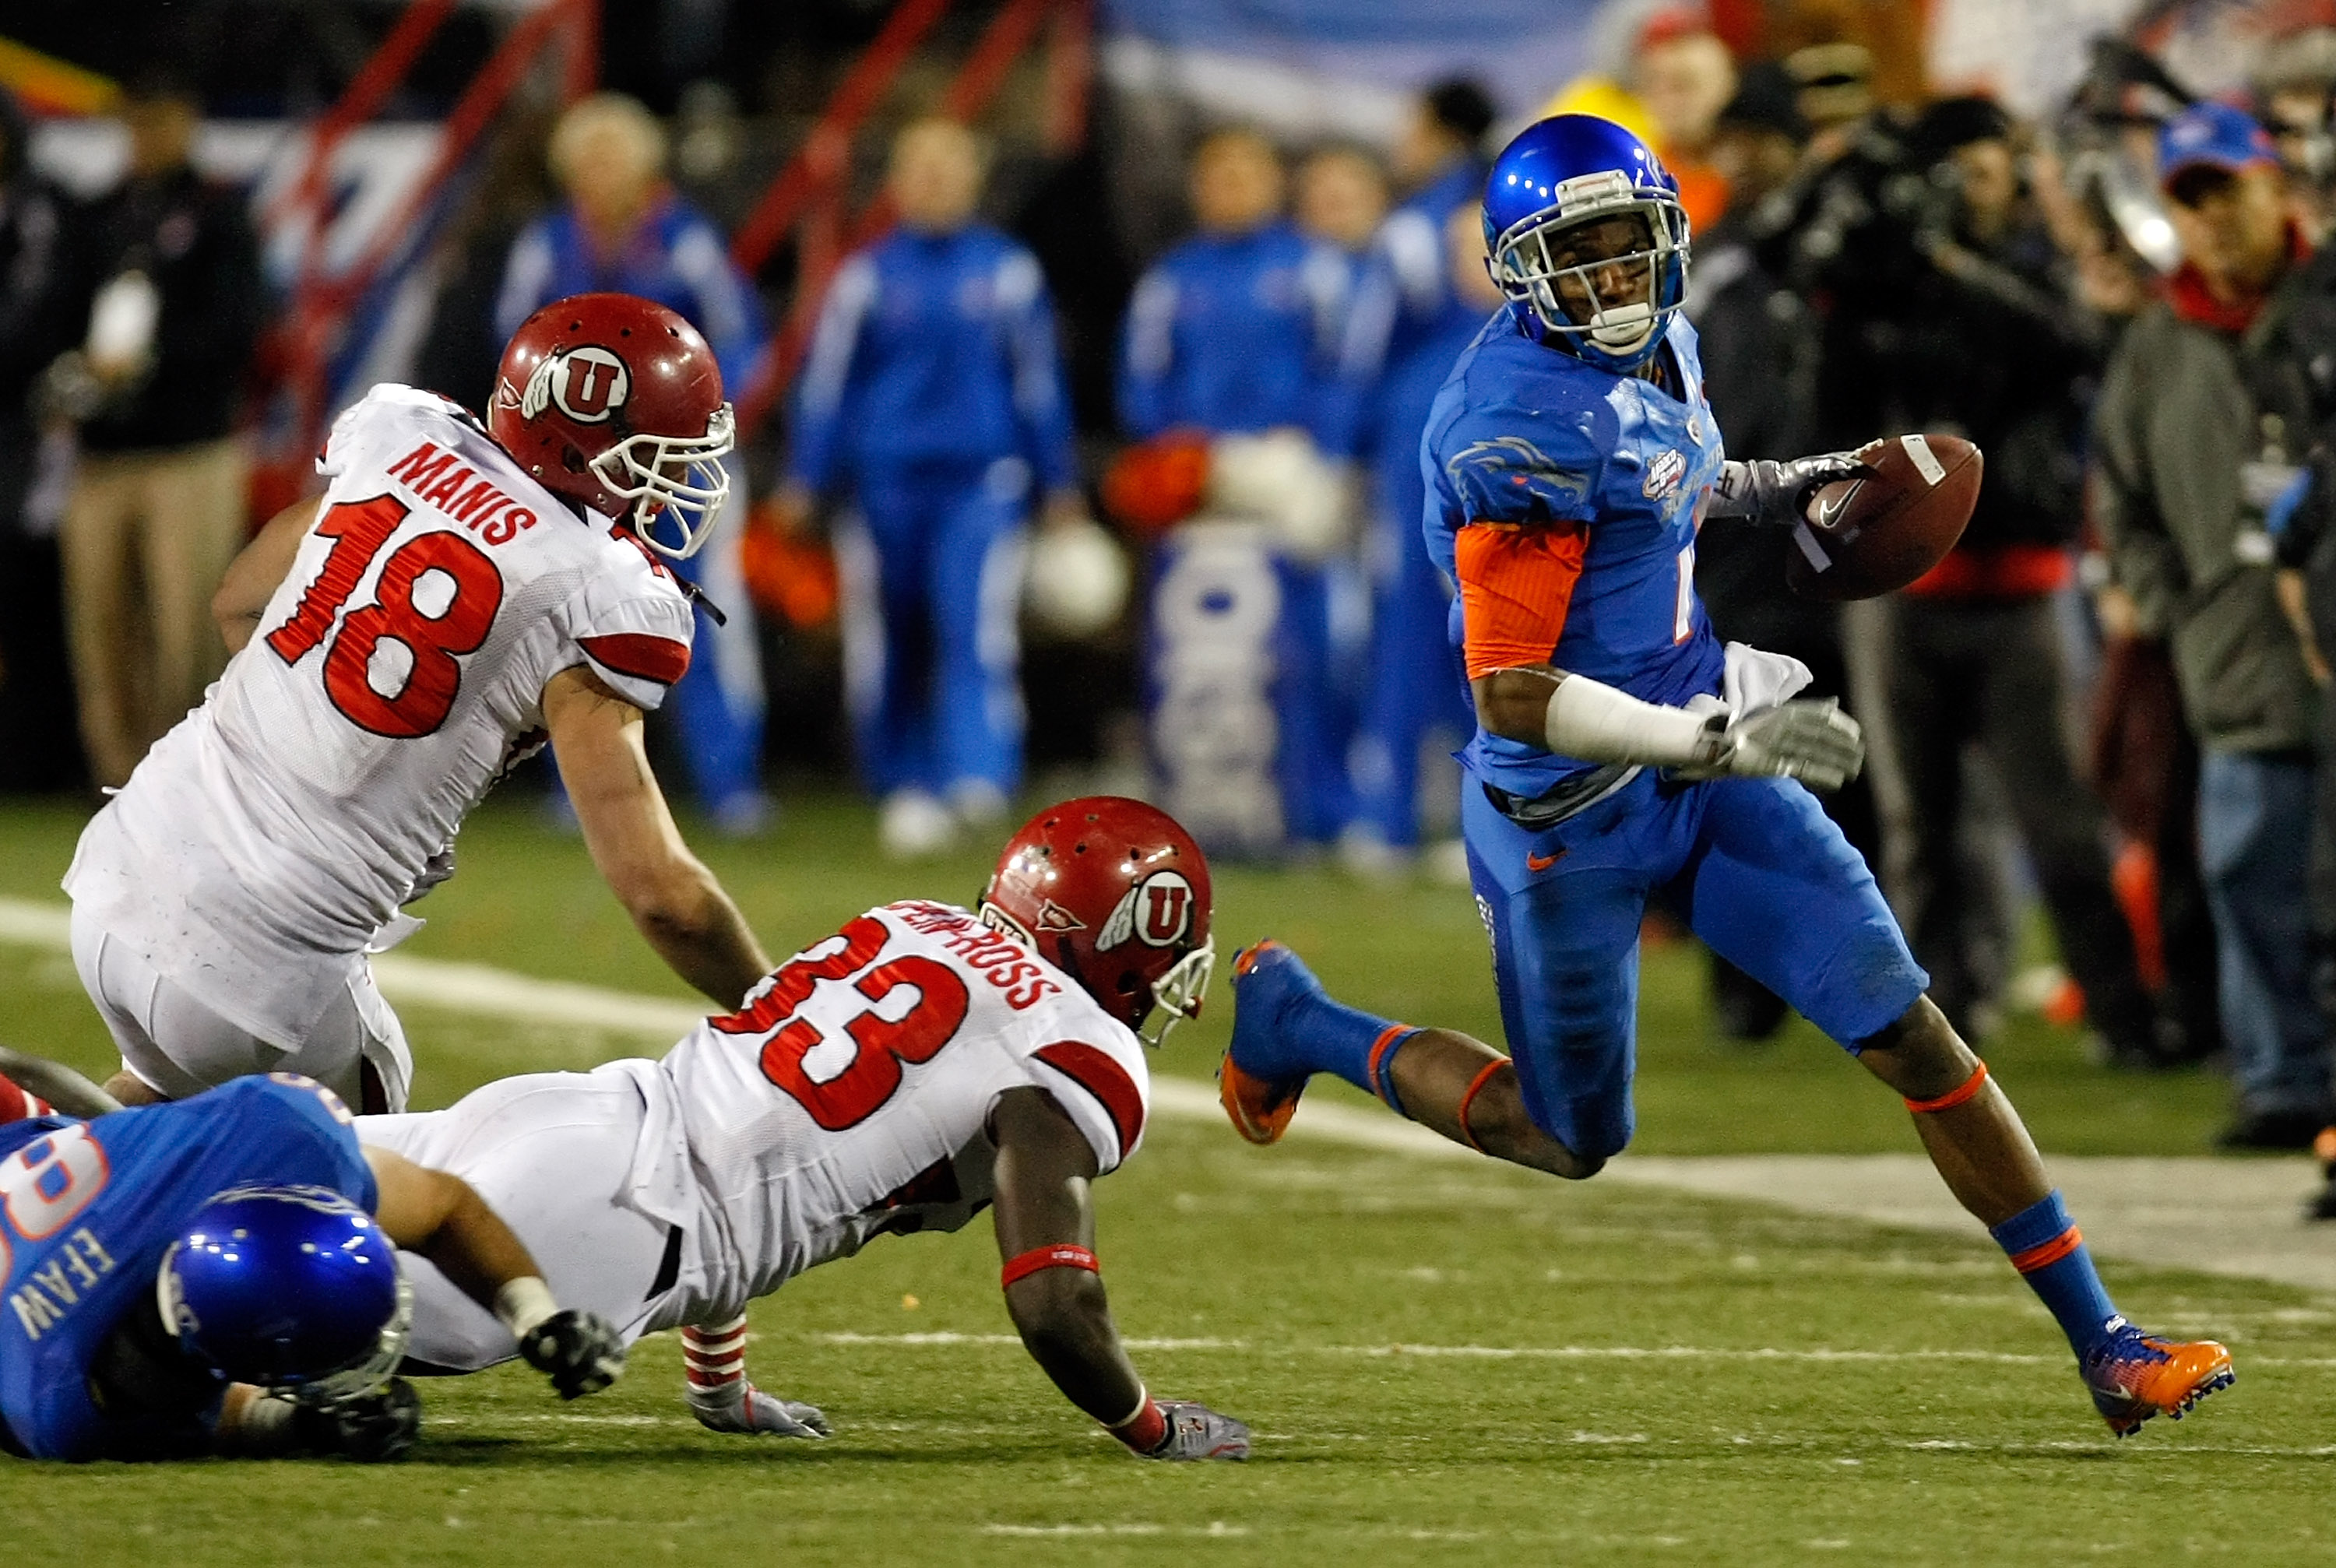 Boise State WR Titus Young